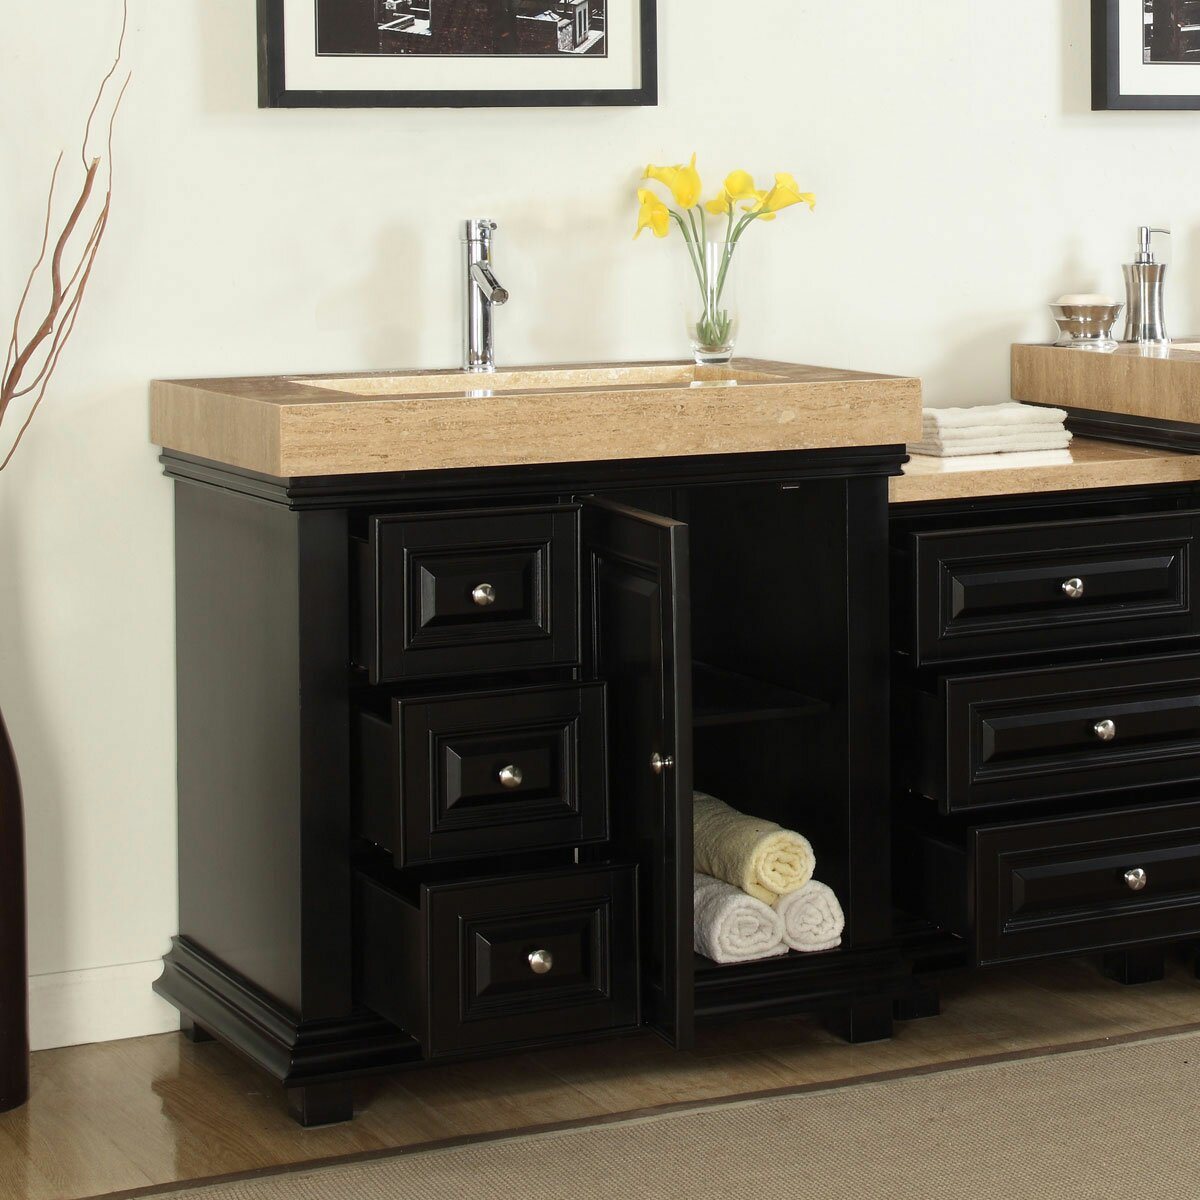 Silkroad Exclusive 55 5 Single Integrated Bathroom Vanity Set With Drain On Right Reviews